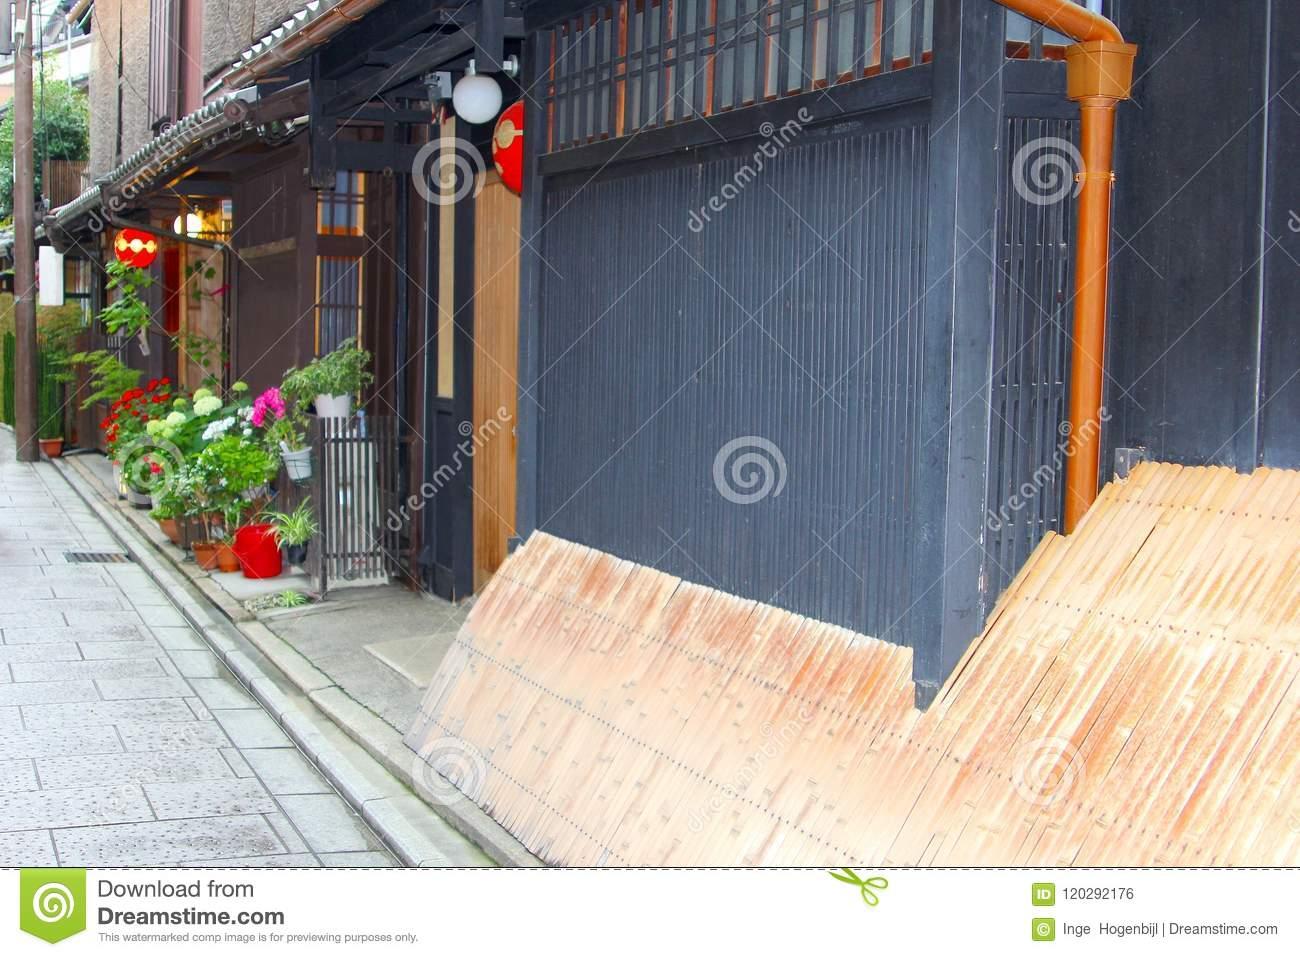 Idyllic Old Street Wooden Houses Flowers Gion Kyoto Japan Stock